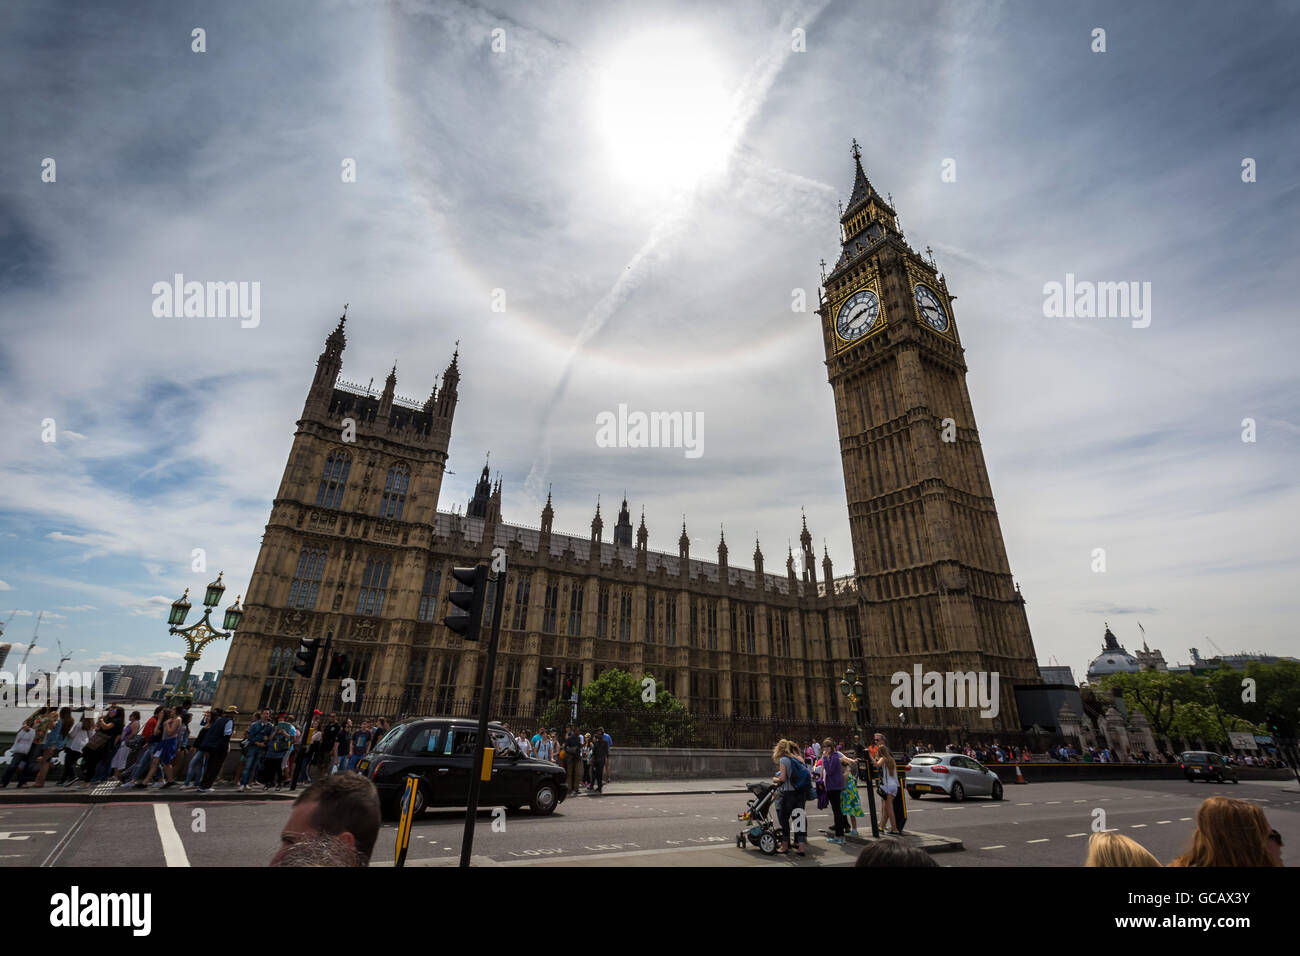 A solar halo seen over Westminster's Parliament buildings and Big Ben, London, UK. Stock Photo